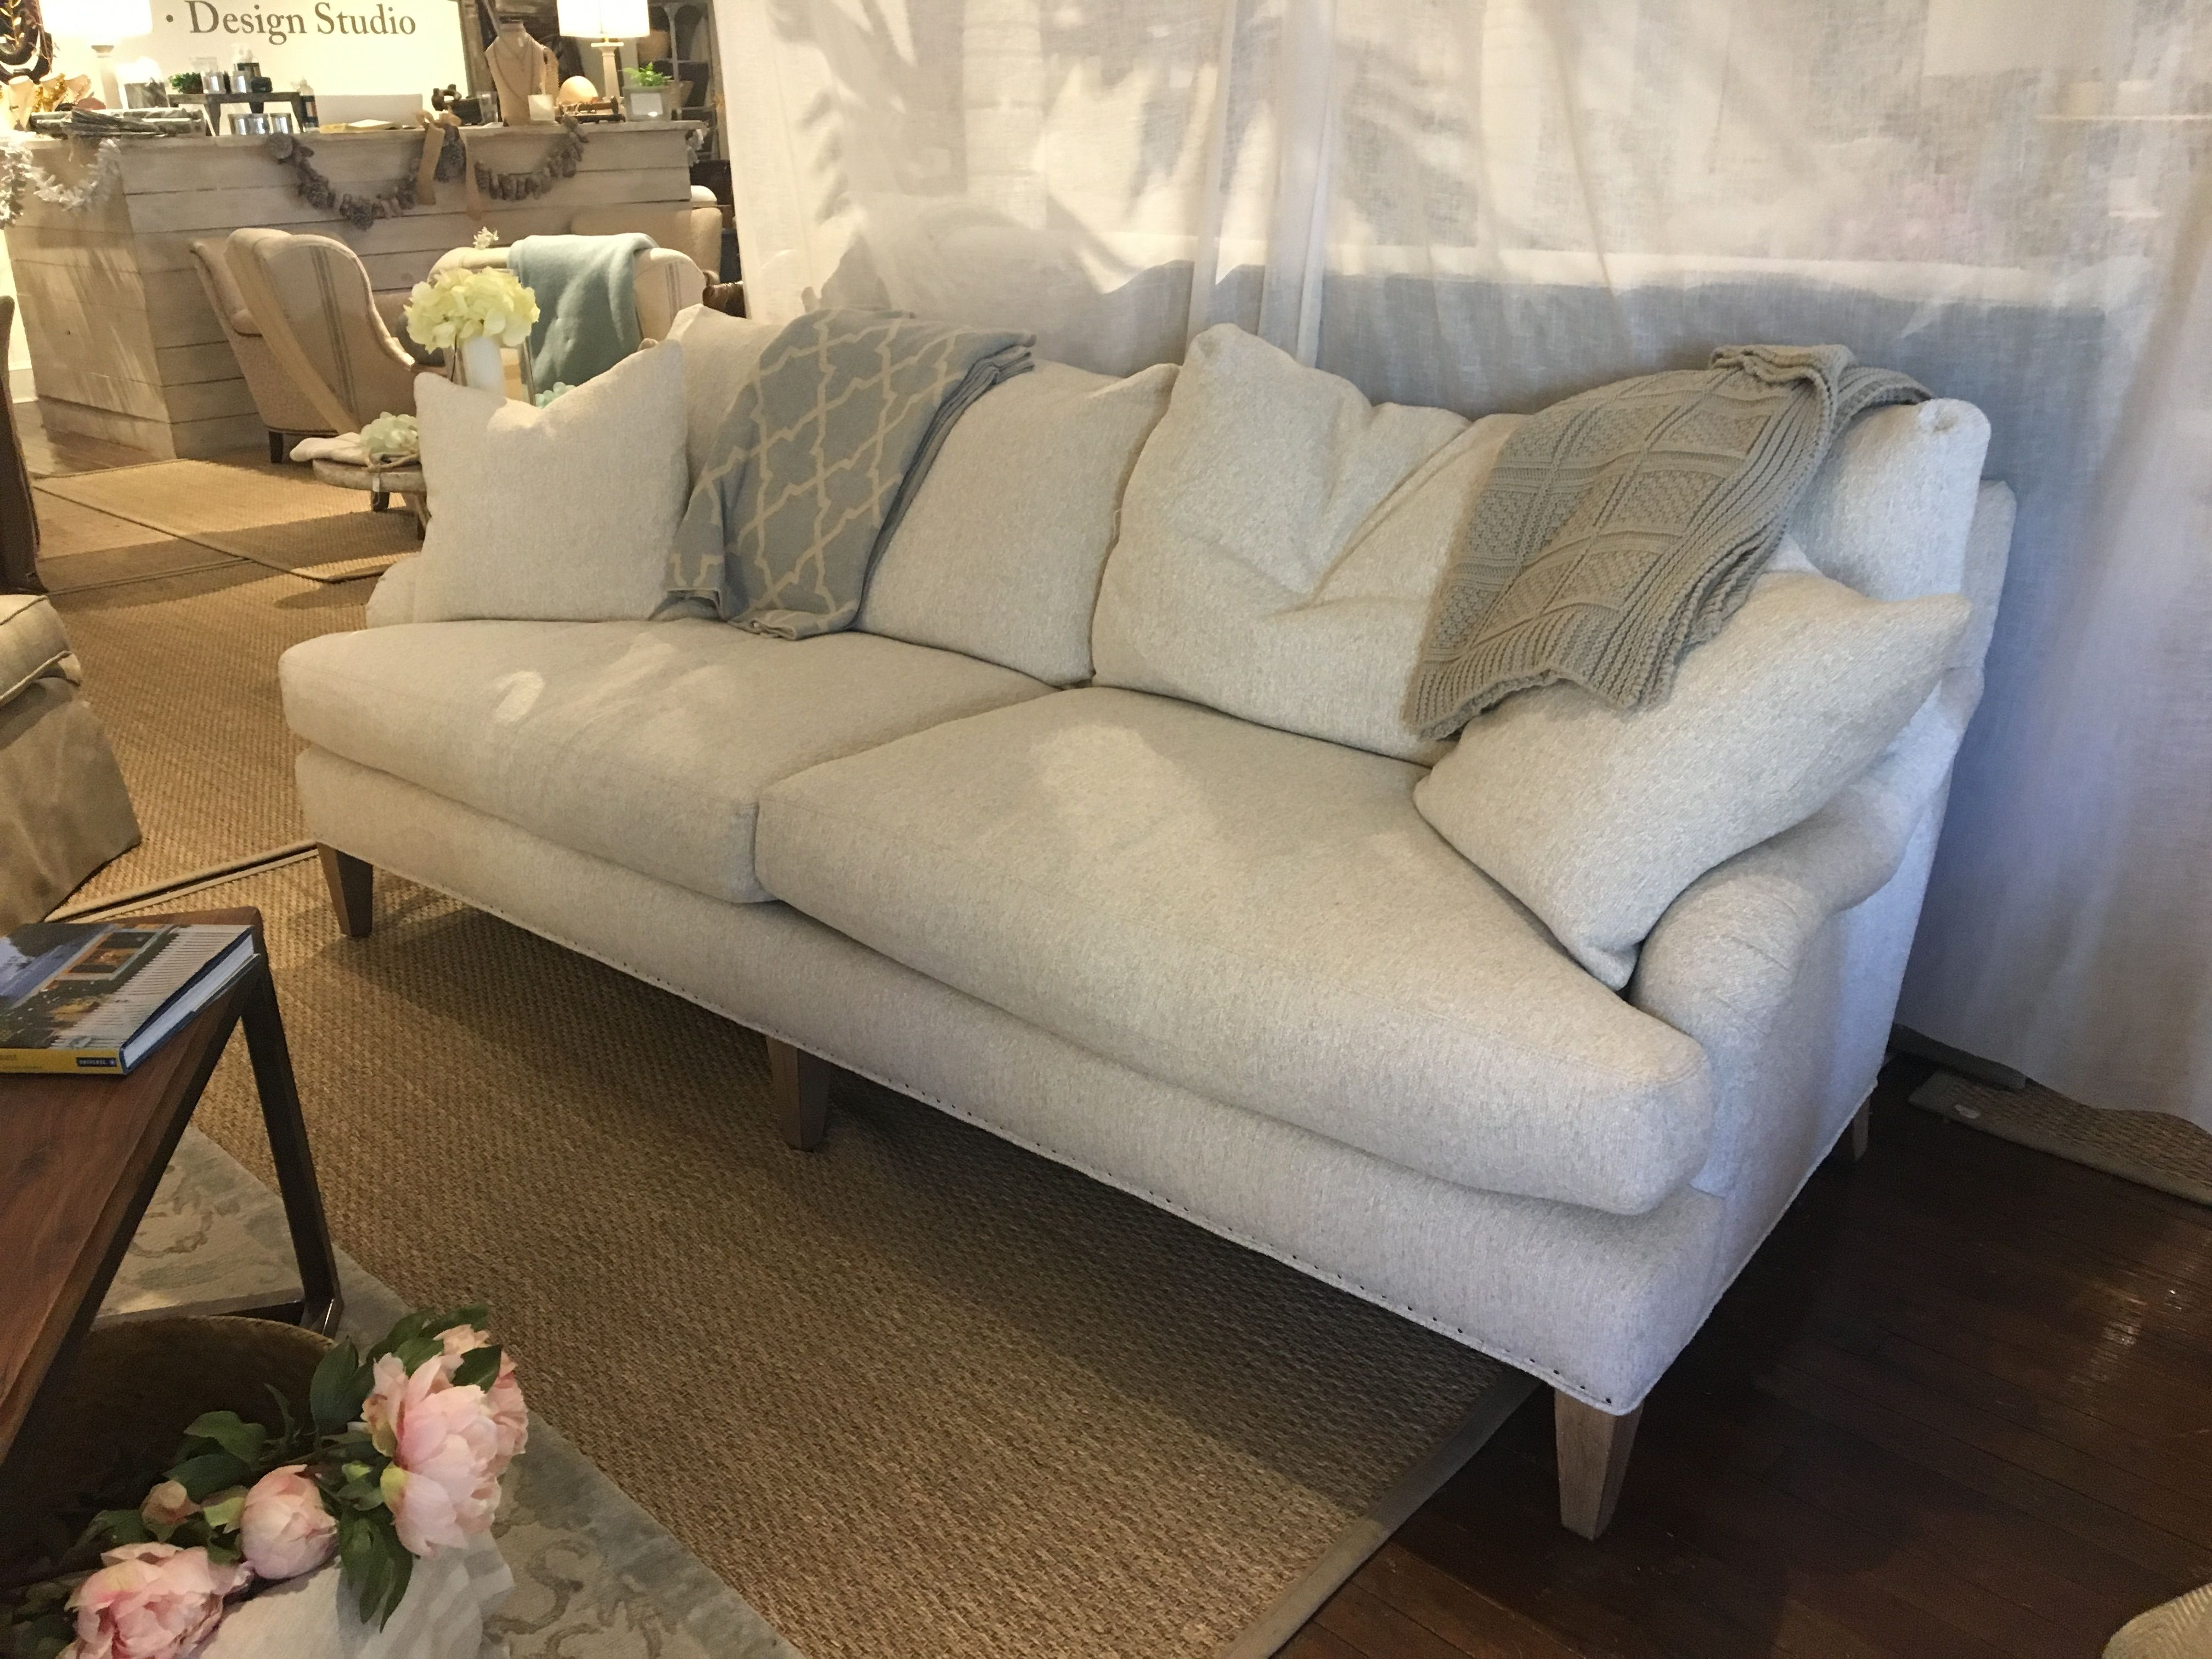 Ardmore Stationary Sofa Cheap Grey Fabric Corner Lee Industries C3612 03 Slipcover Coverall Floor Dover 3 080 00 95w X 45d 38h